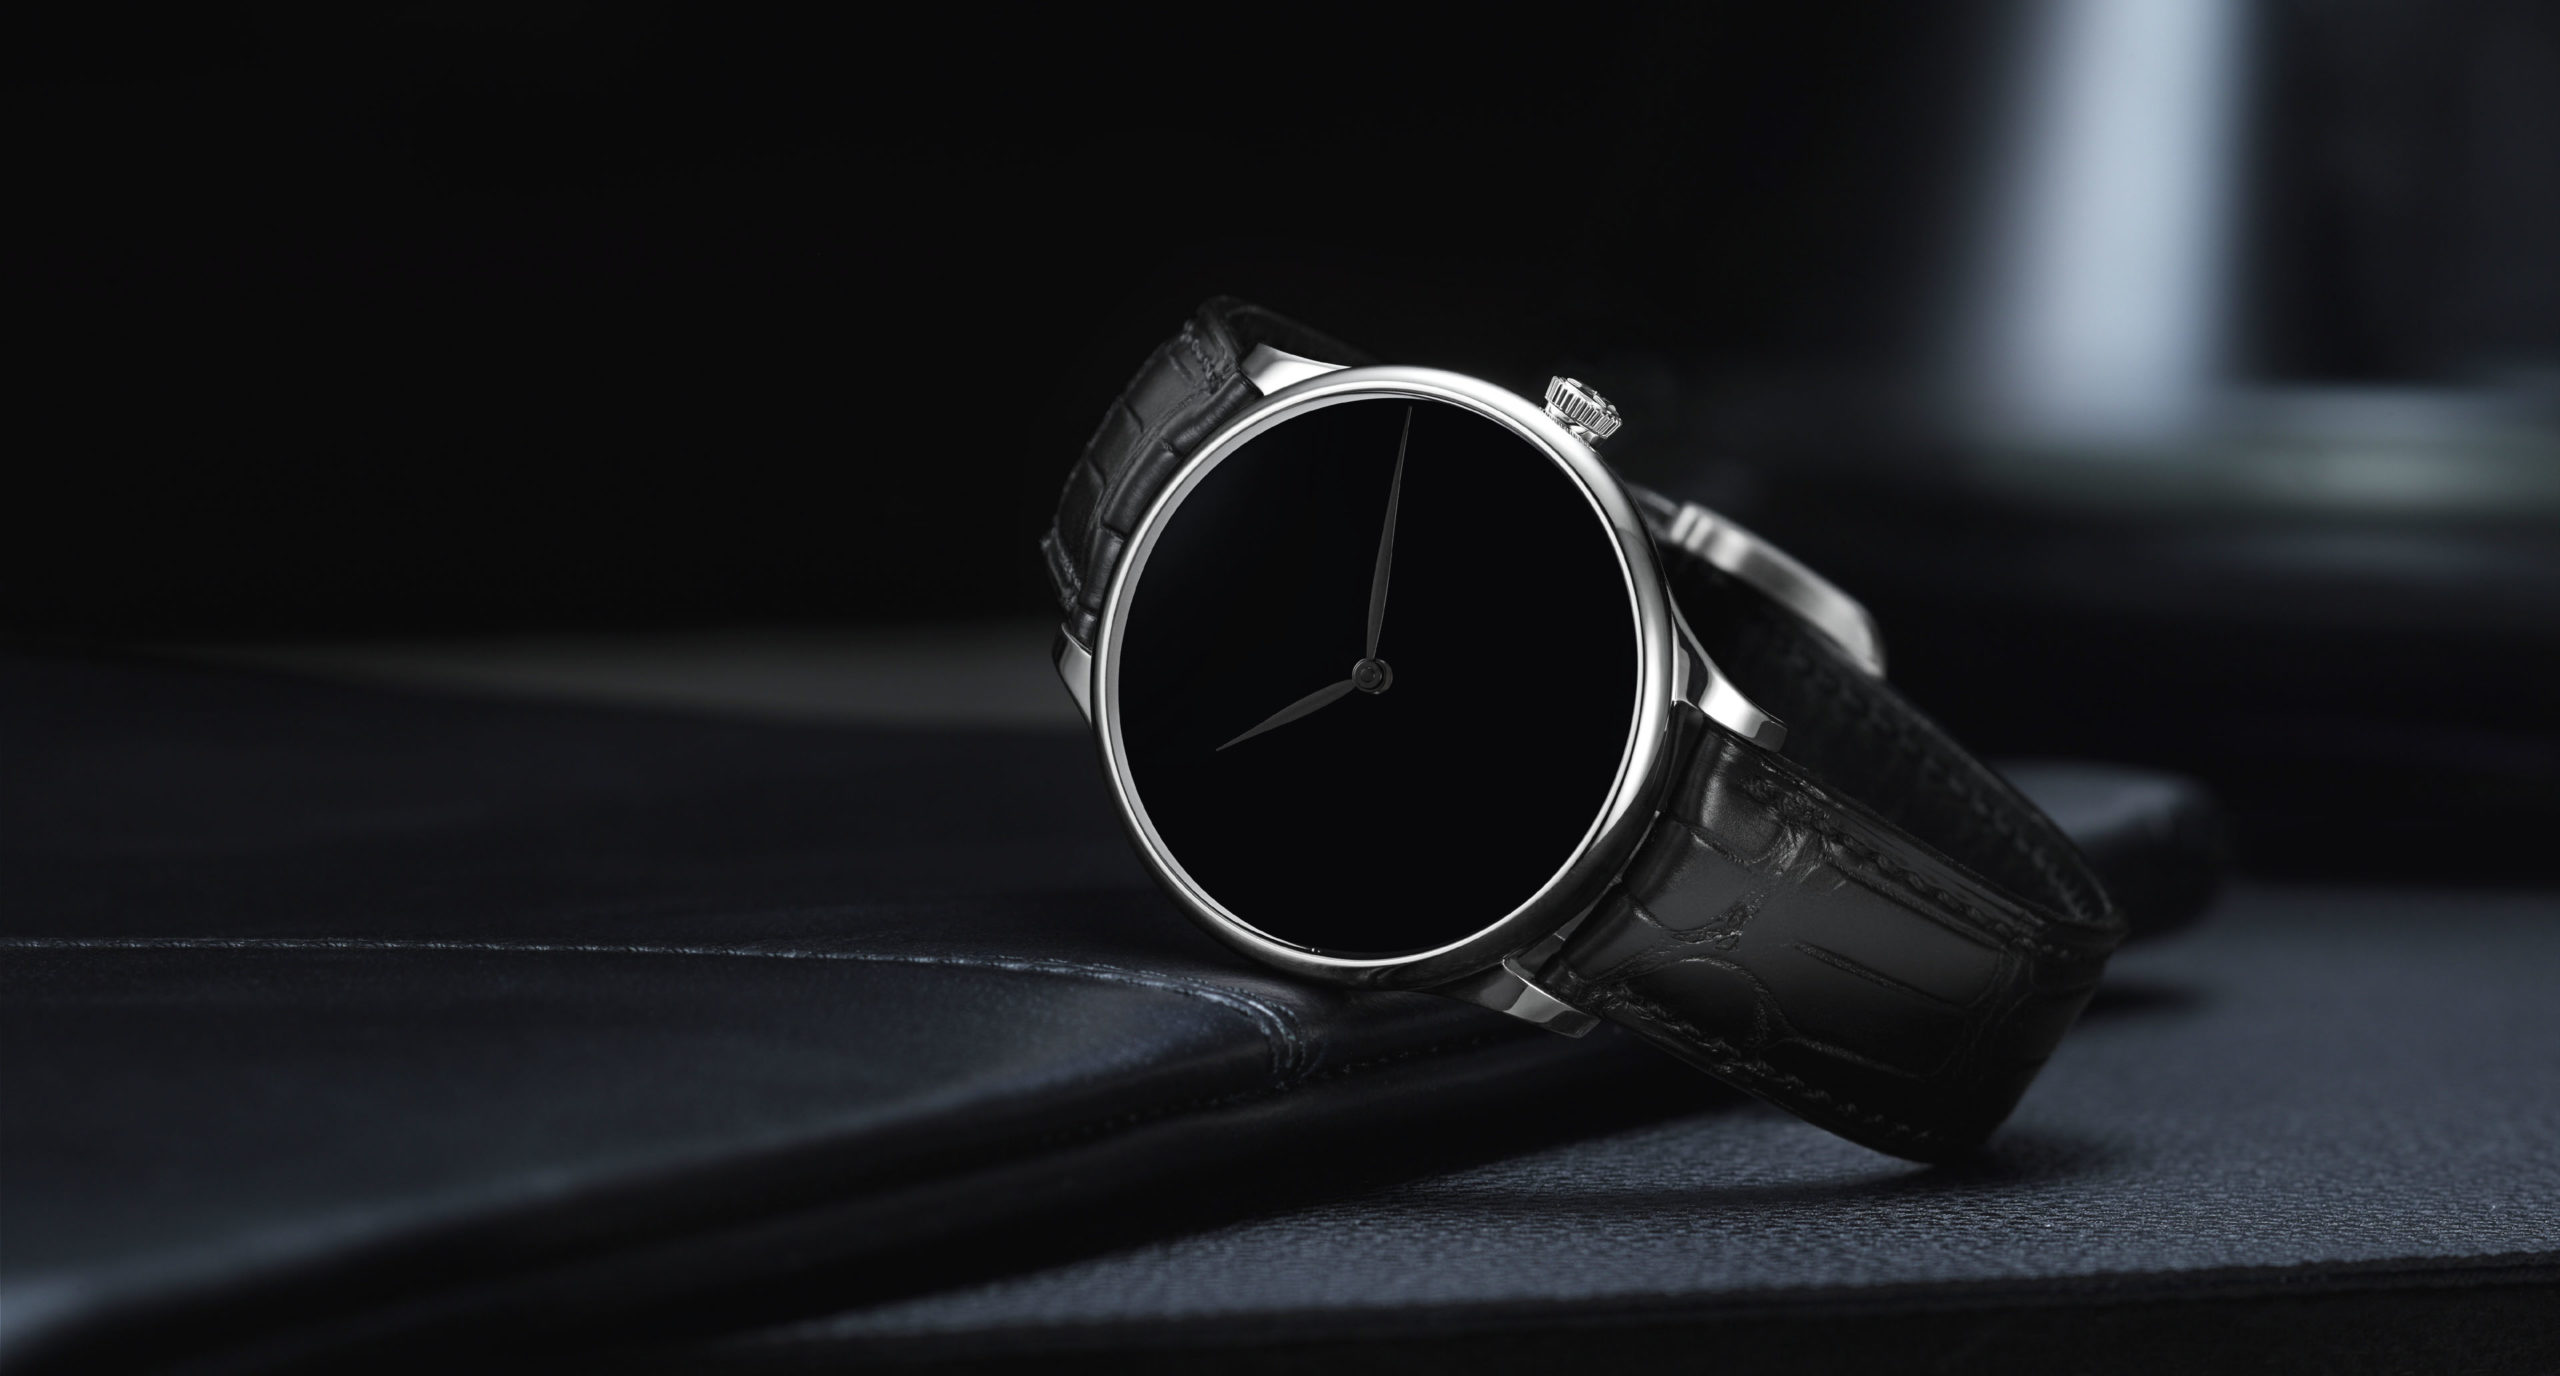 best dress watches of 2020 over $10K